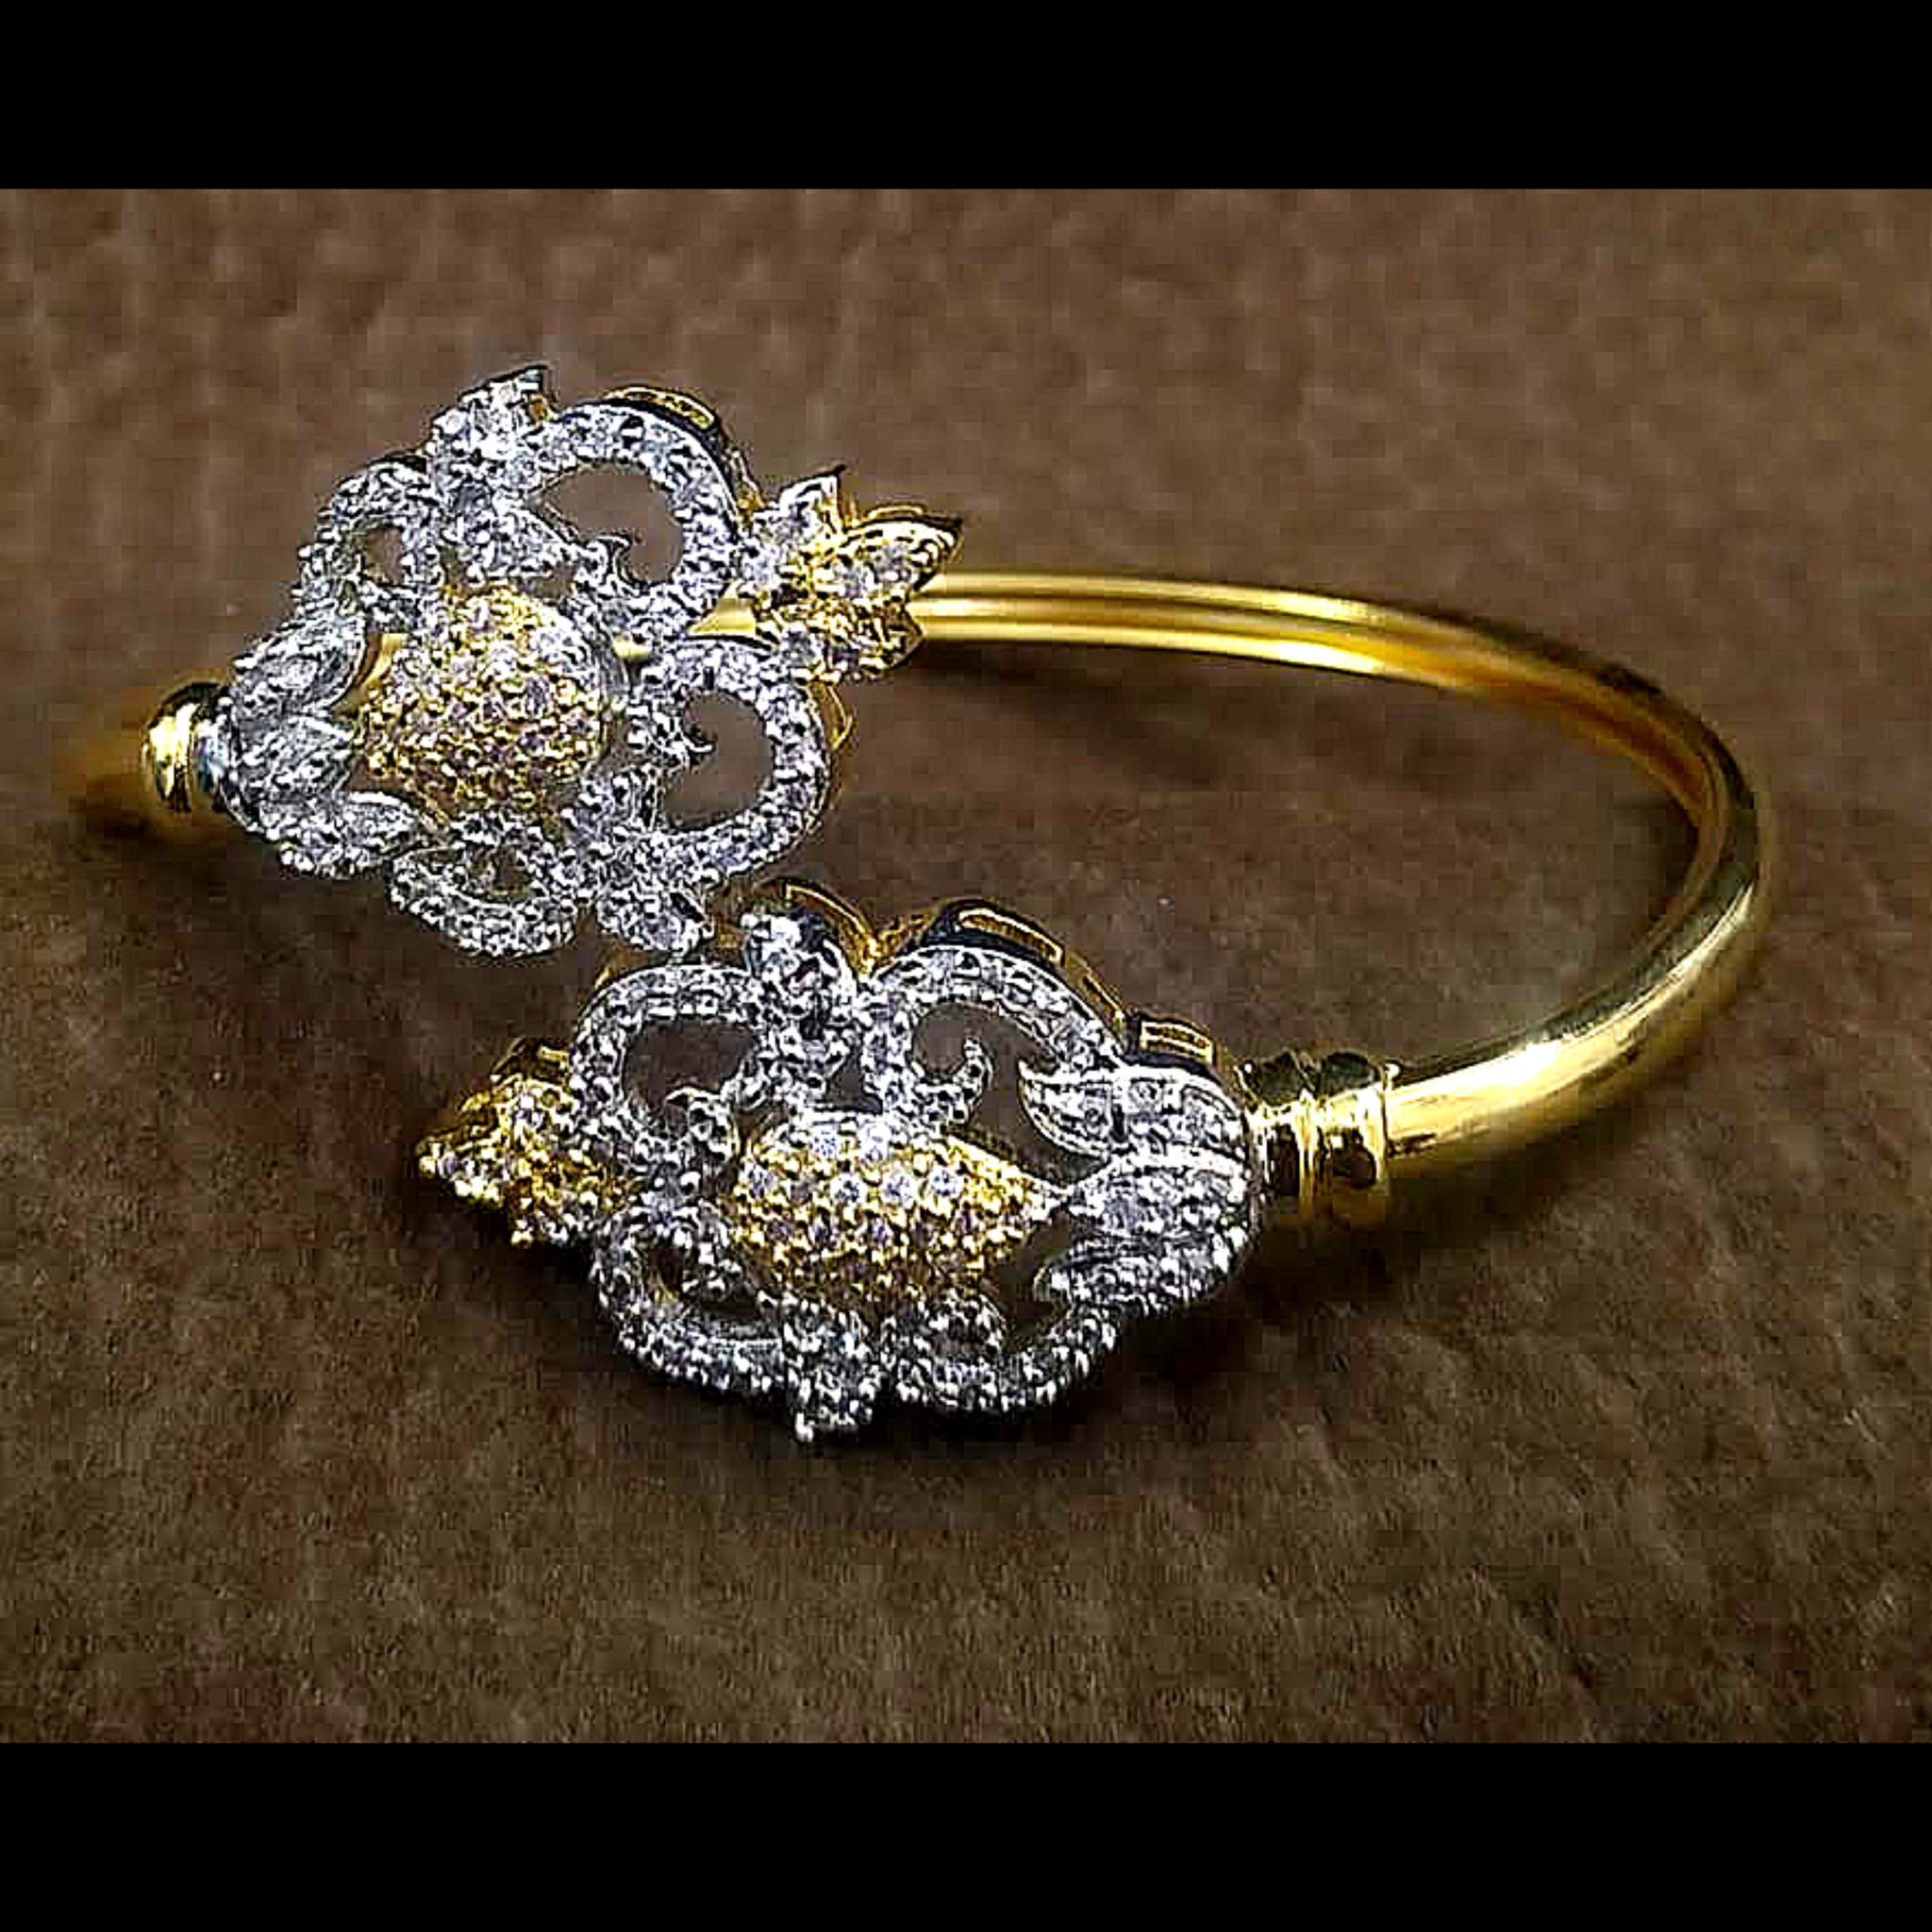 Golden Bracelet with Zercon Silver Work